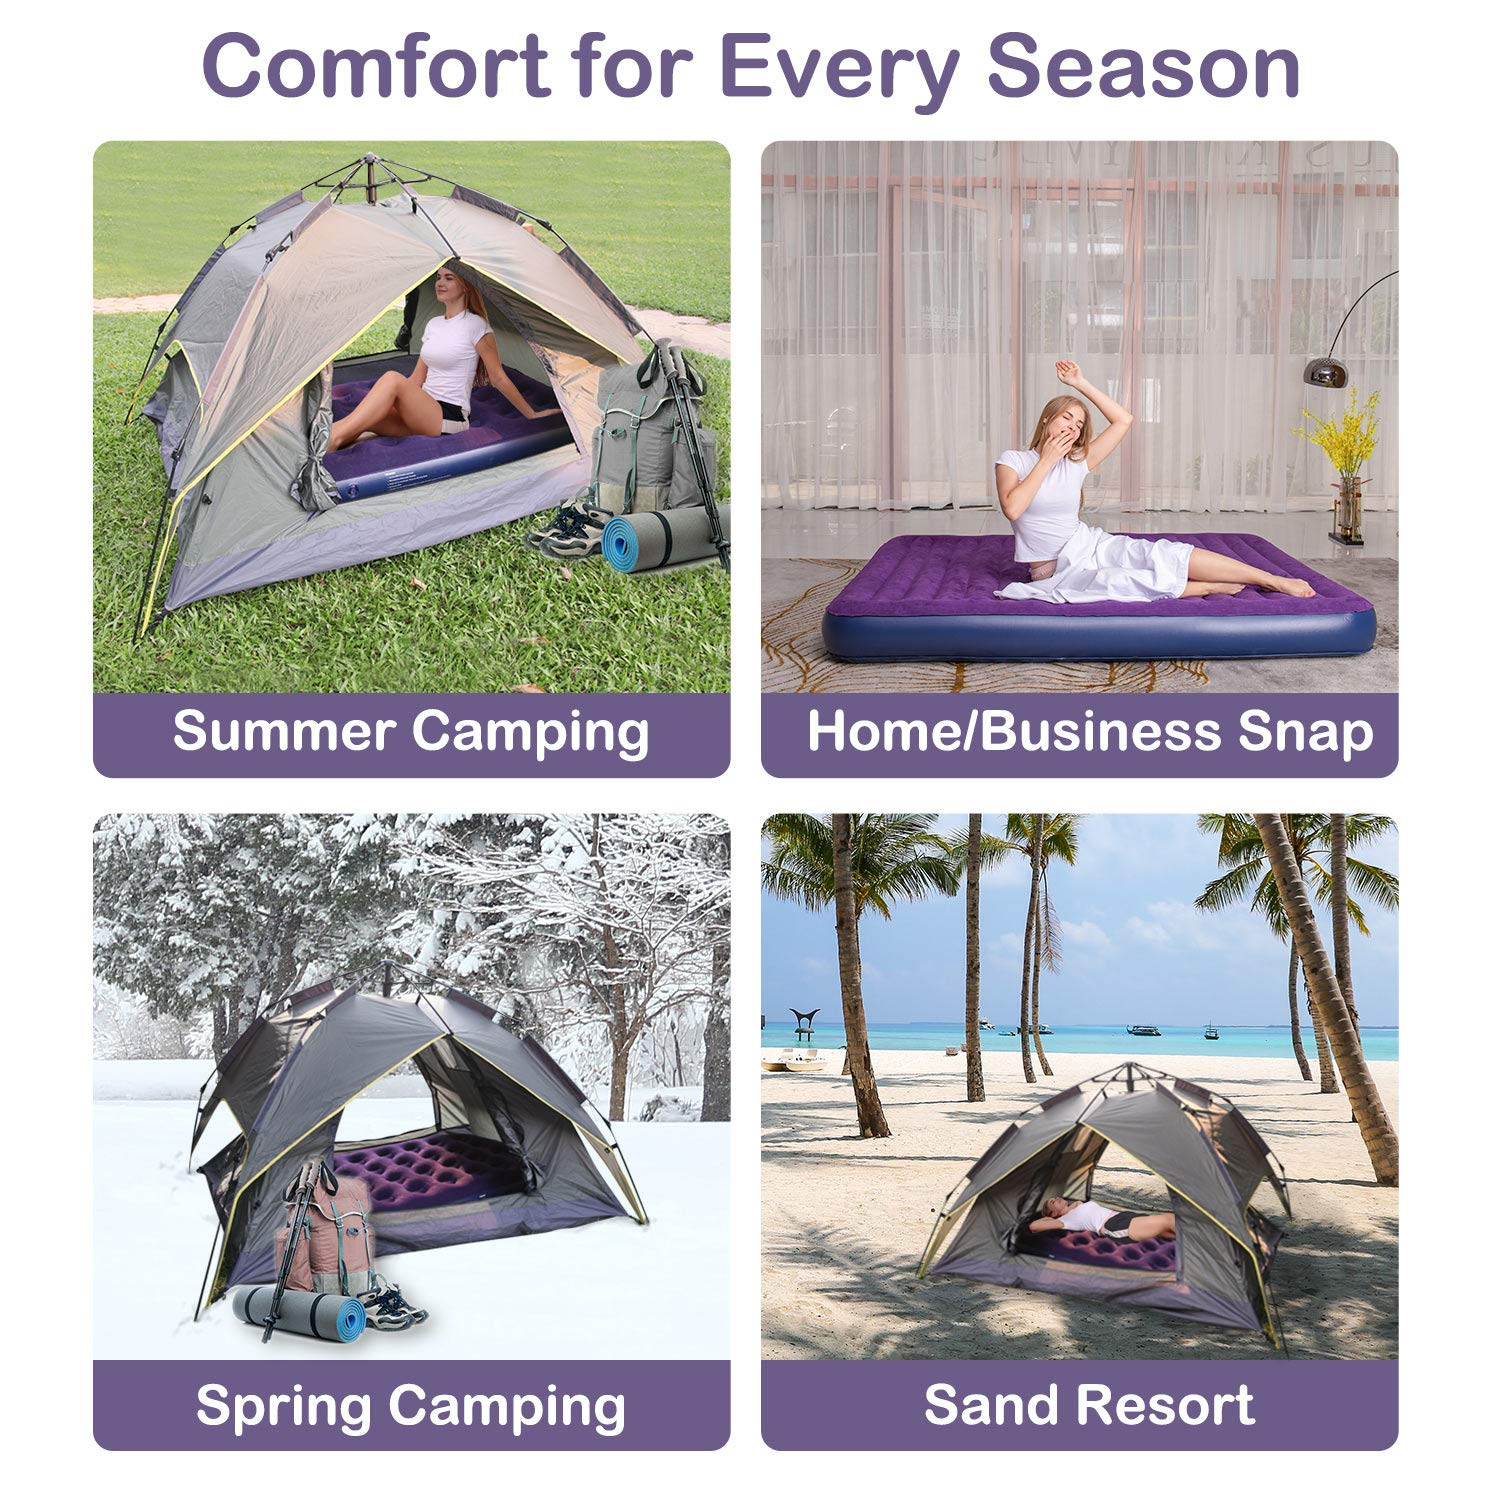 OlarHike Queen Air Mattress, Inflatable Single High Airbed for Guests, Blow up Raised Air Bed for Camping with Electric Air Battery Pump, Purple by OlarHike (Image #8)